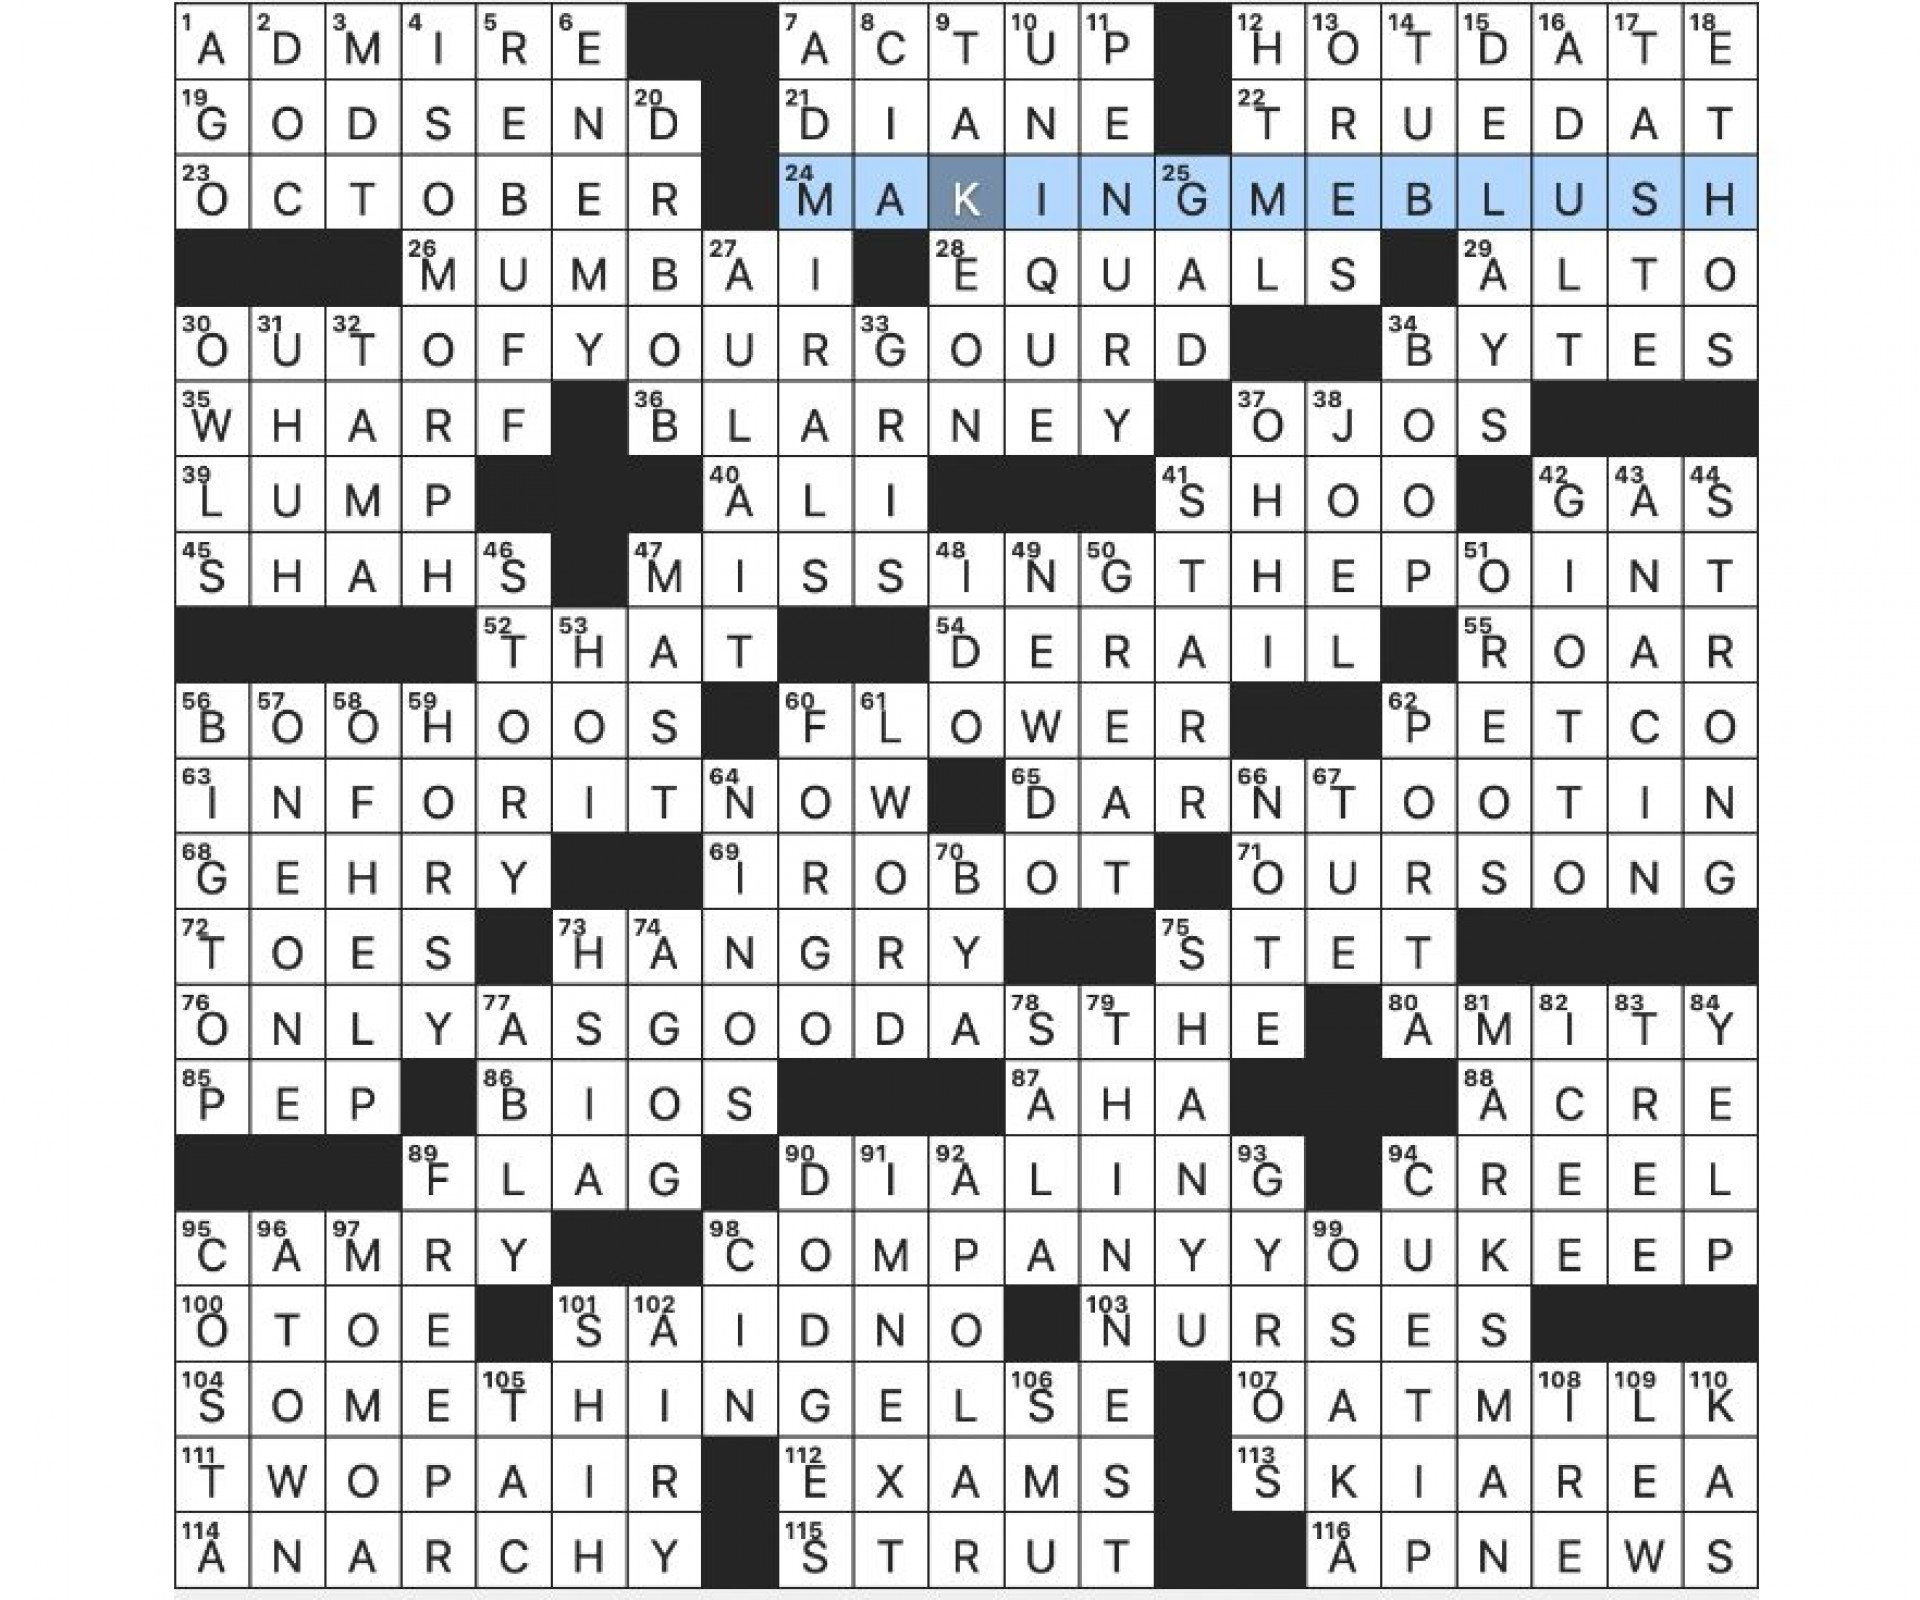 004 Archaicawful Rex Parker Doe Nytime Crossword Inspiration  The Nyt Puzzle 2020 Chore Galore Keep Change1920